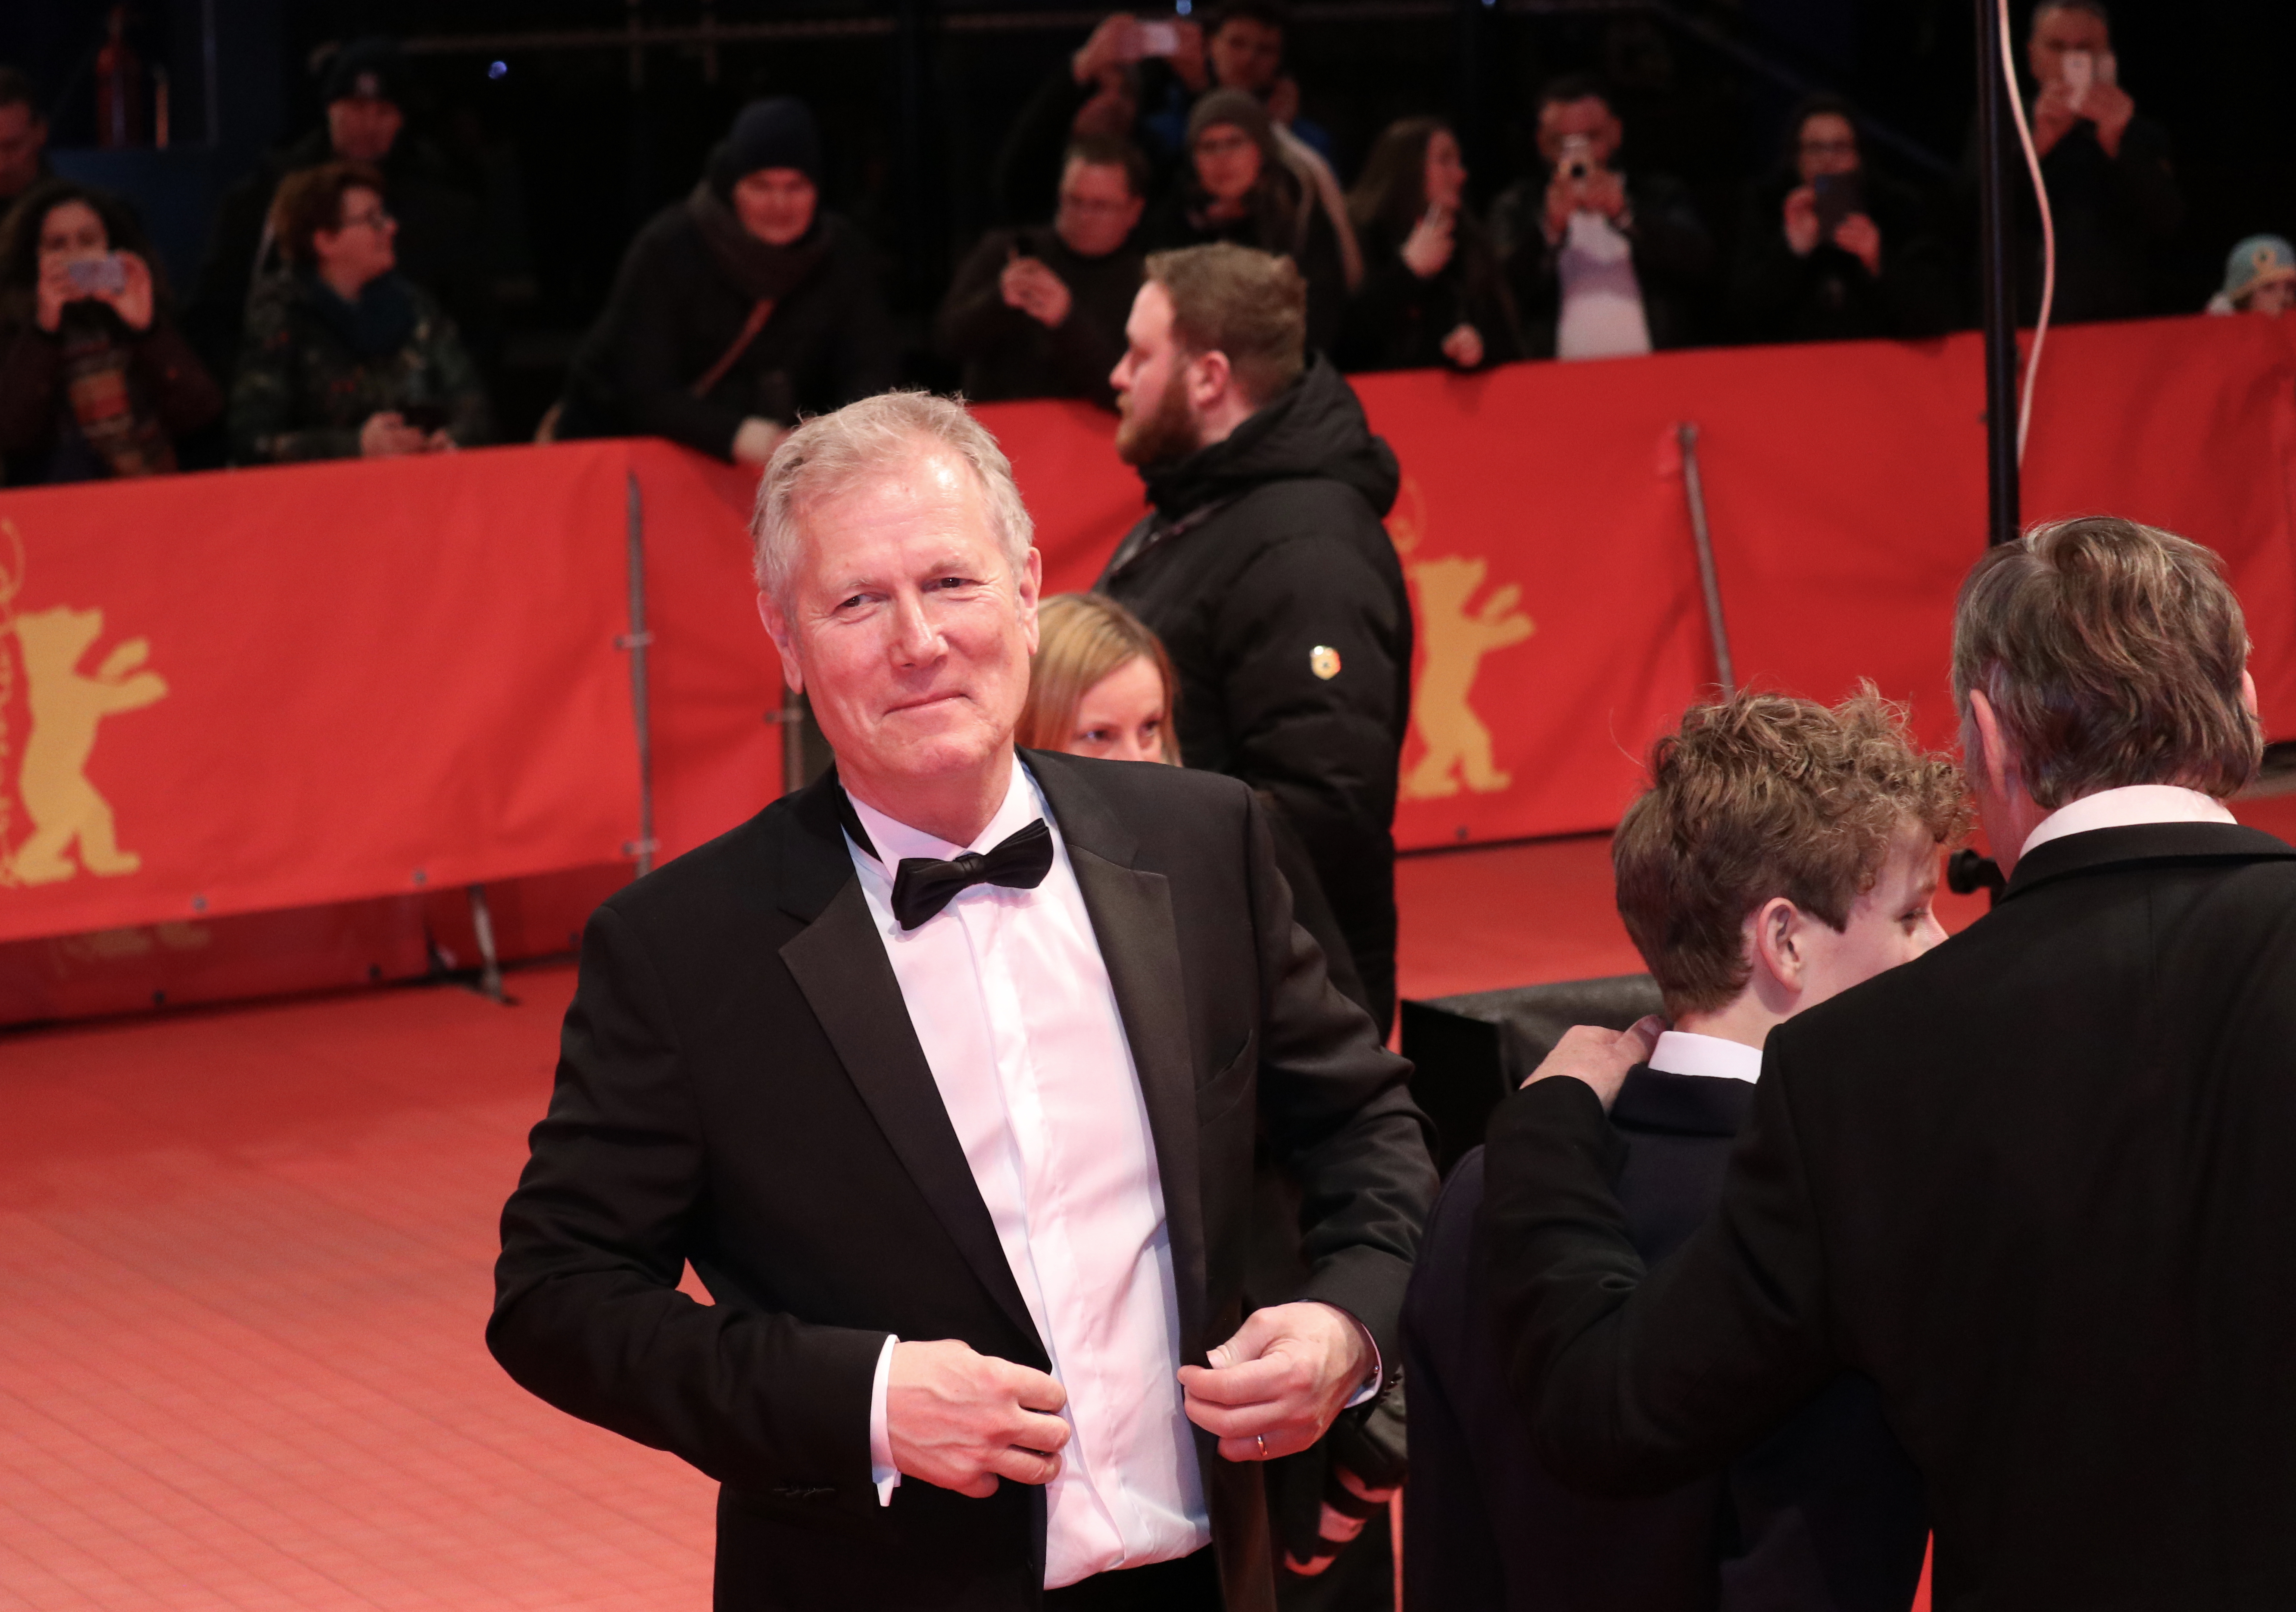 Berlino 2019: Hans Petter Moland sul red carpet di Out Stealing Horses